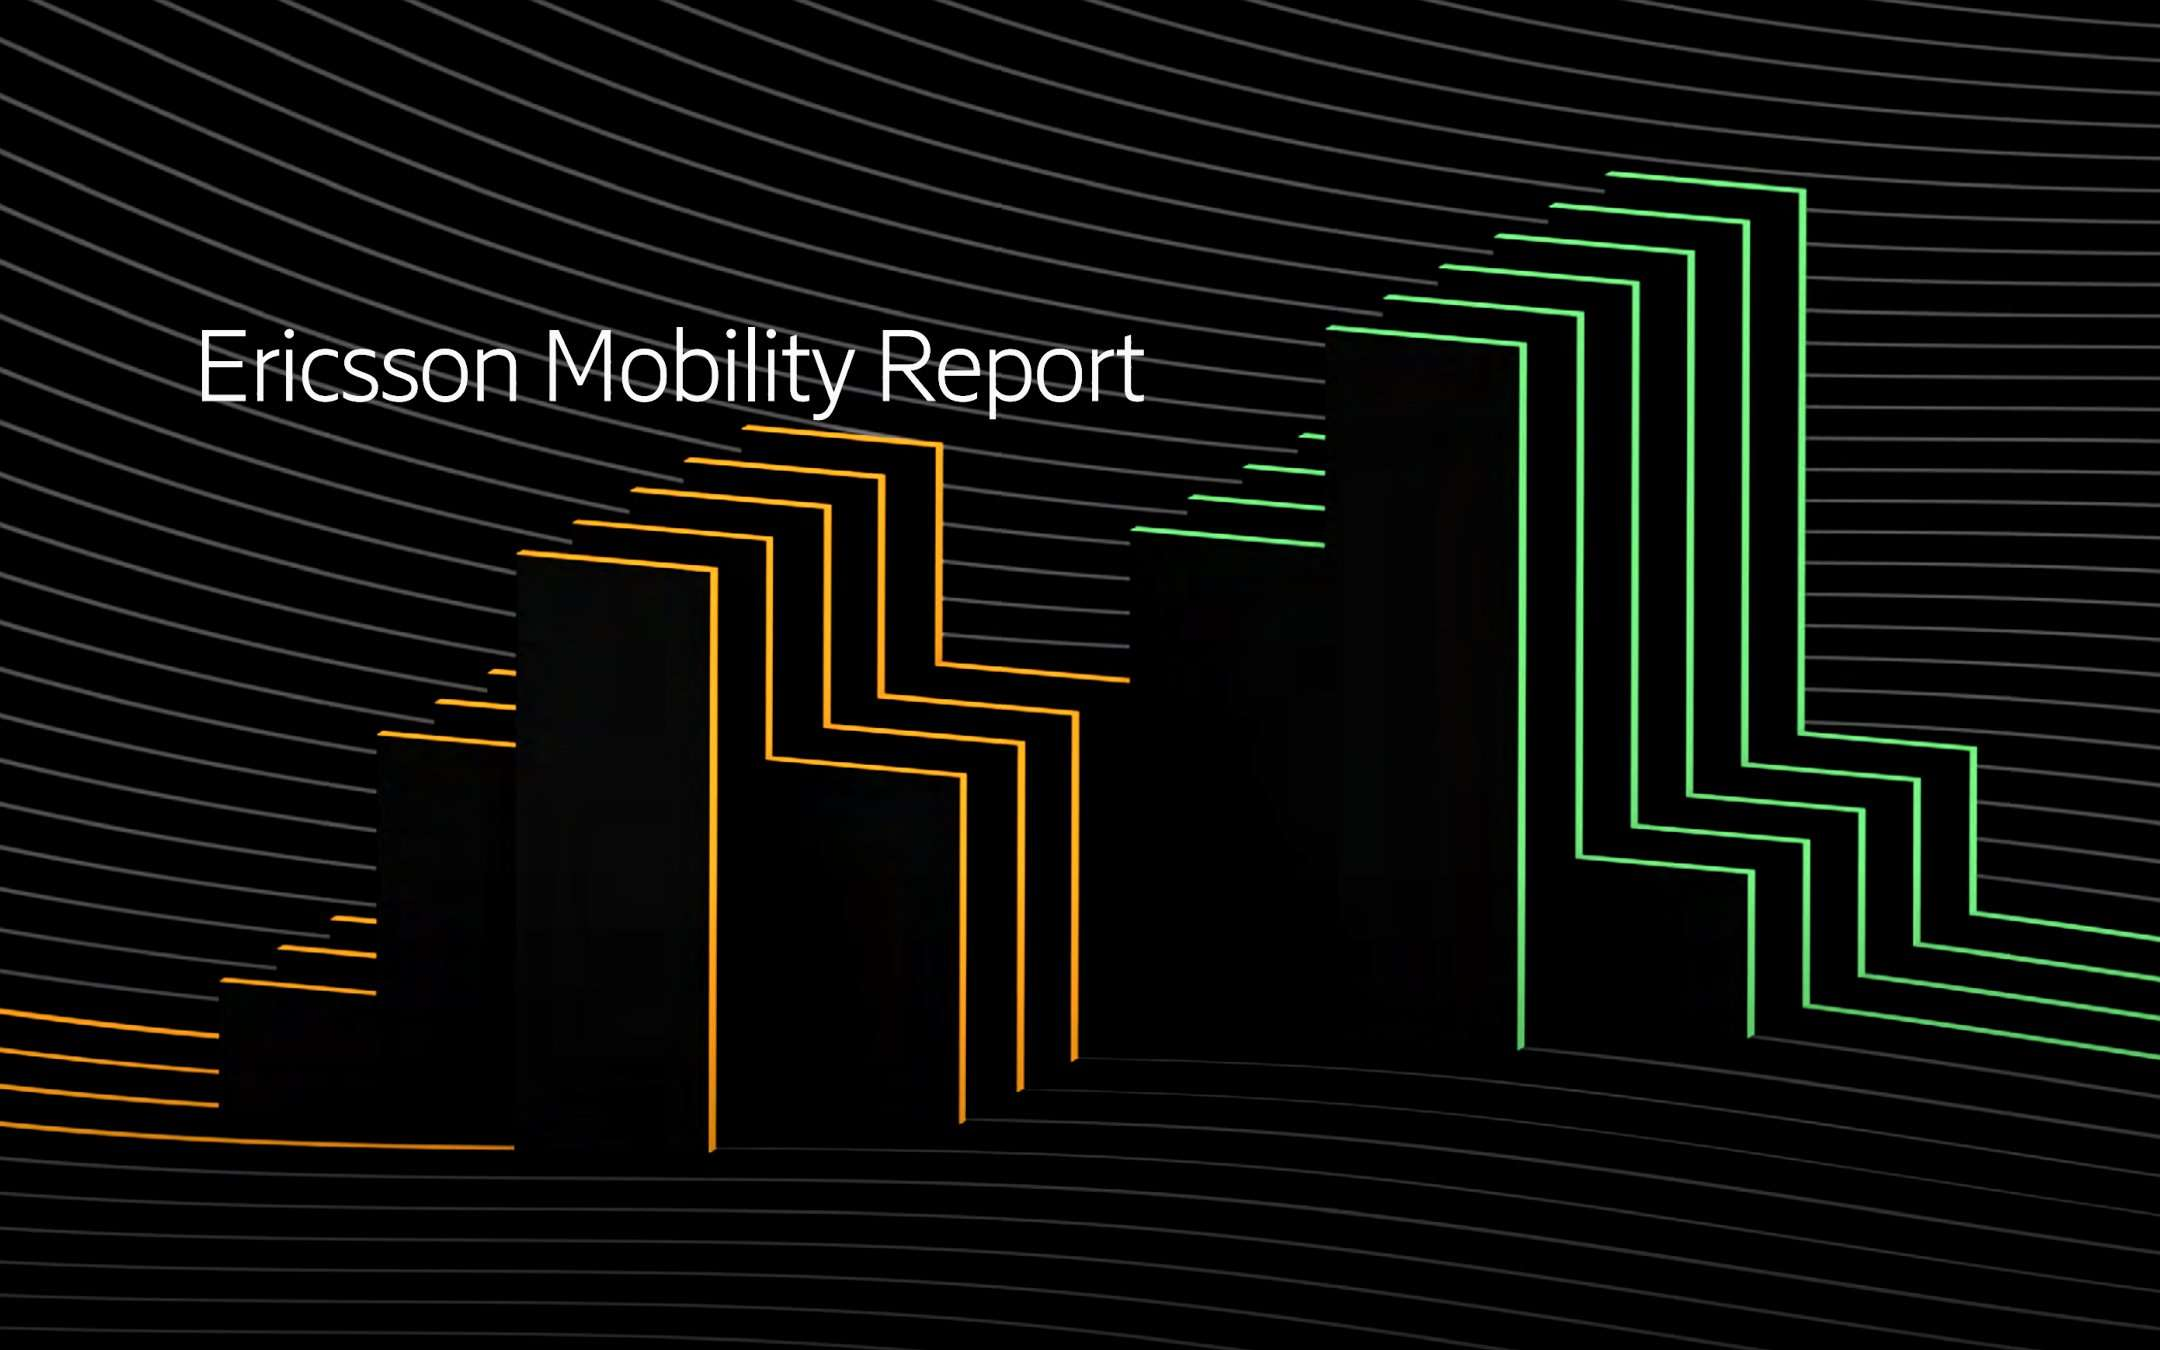 Ericsson Mobility Report: times and ways of 5G